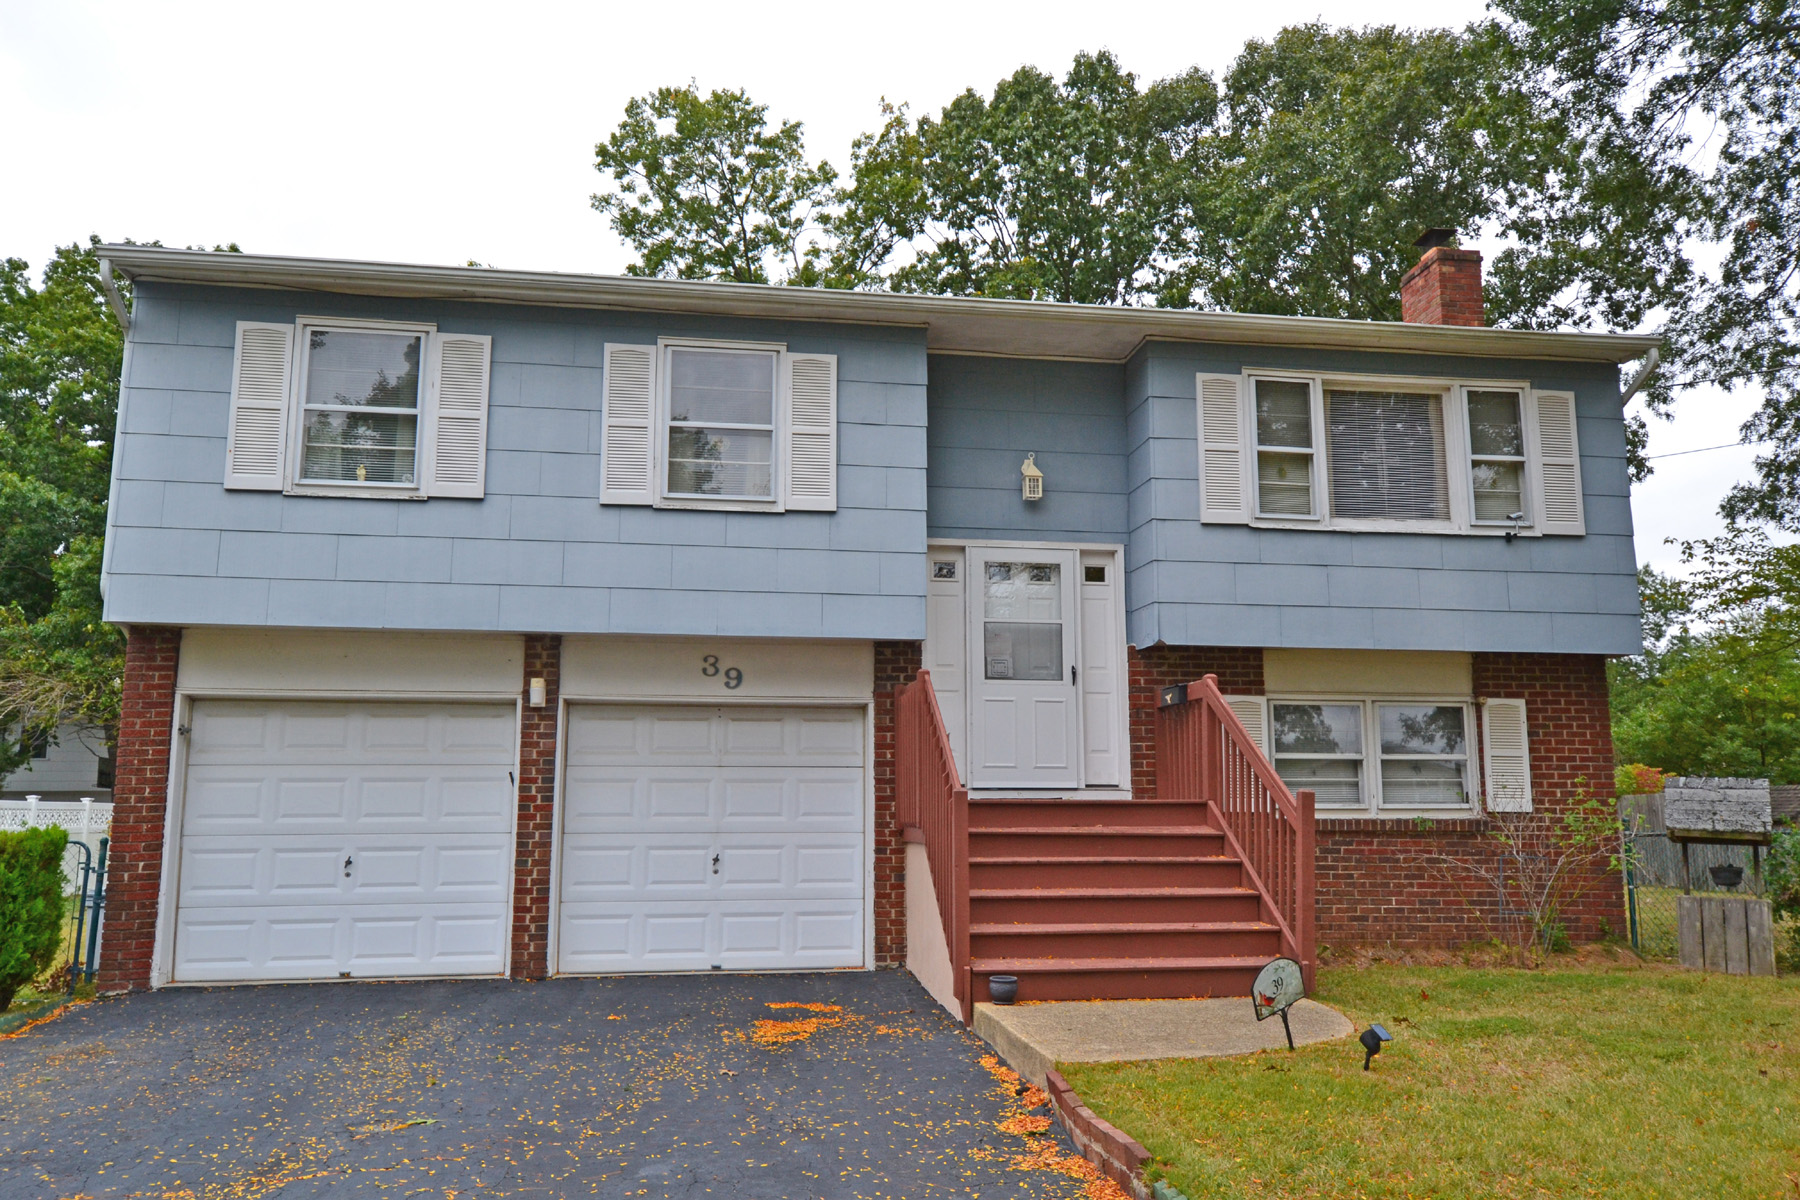 Single Family Home for Sale at Great Home With Lots Of Upgrades 39 Pheasant Drive Bayville, New Jersey 08721 United States